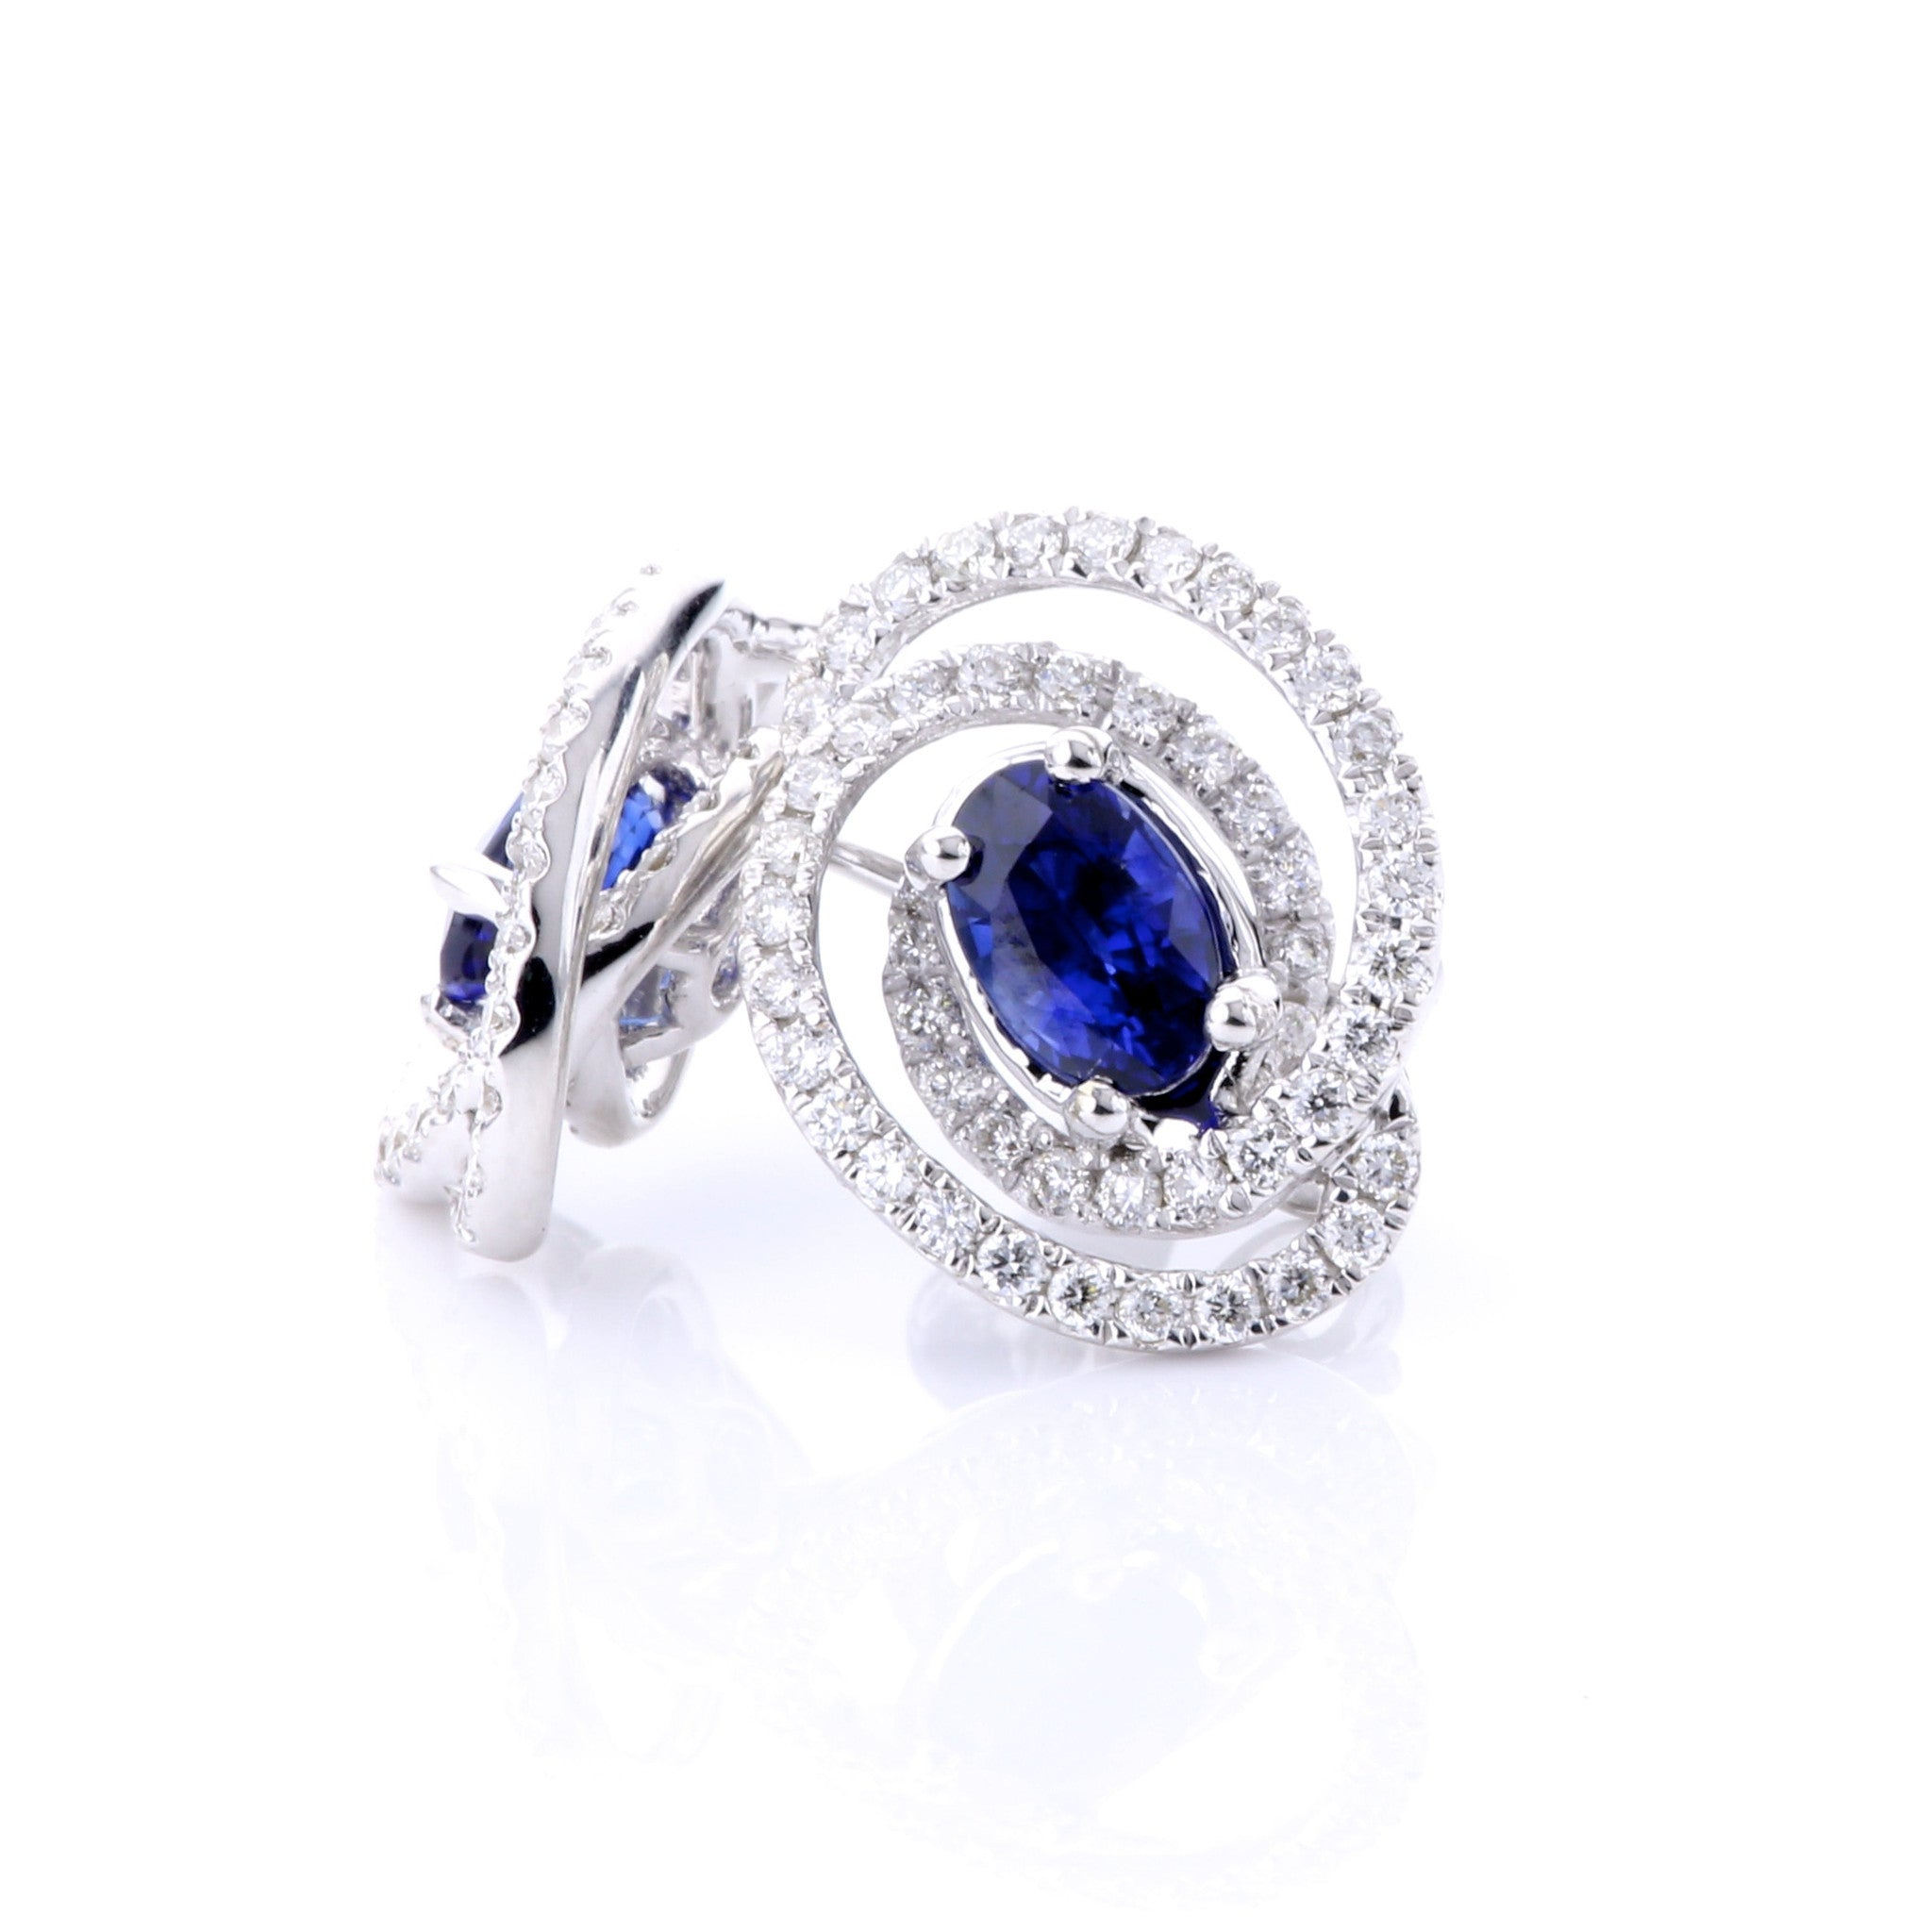 Oval Sapphire Earrings with Wrapped Diamond Halo 3